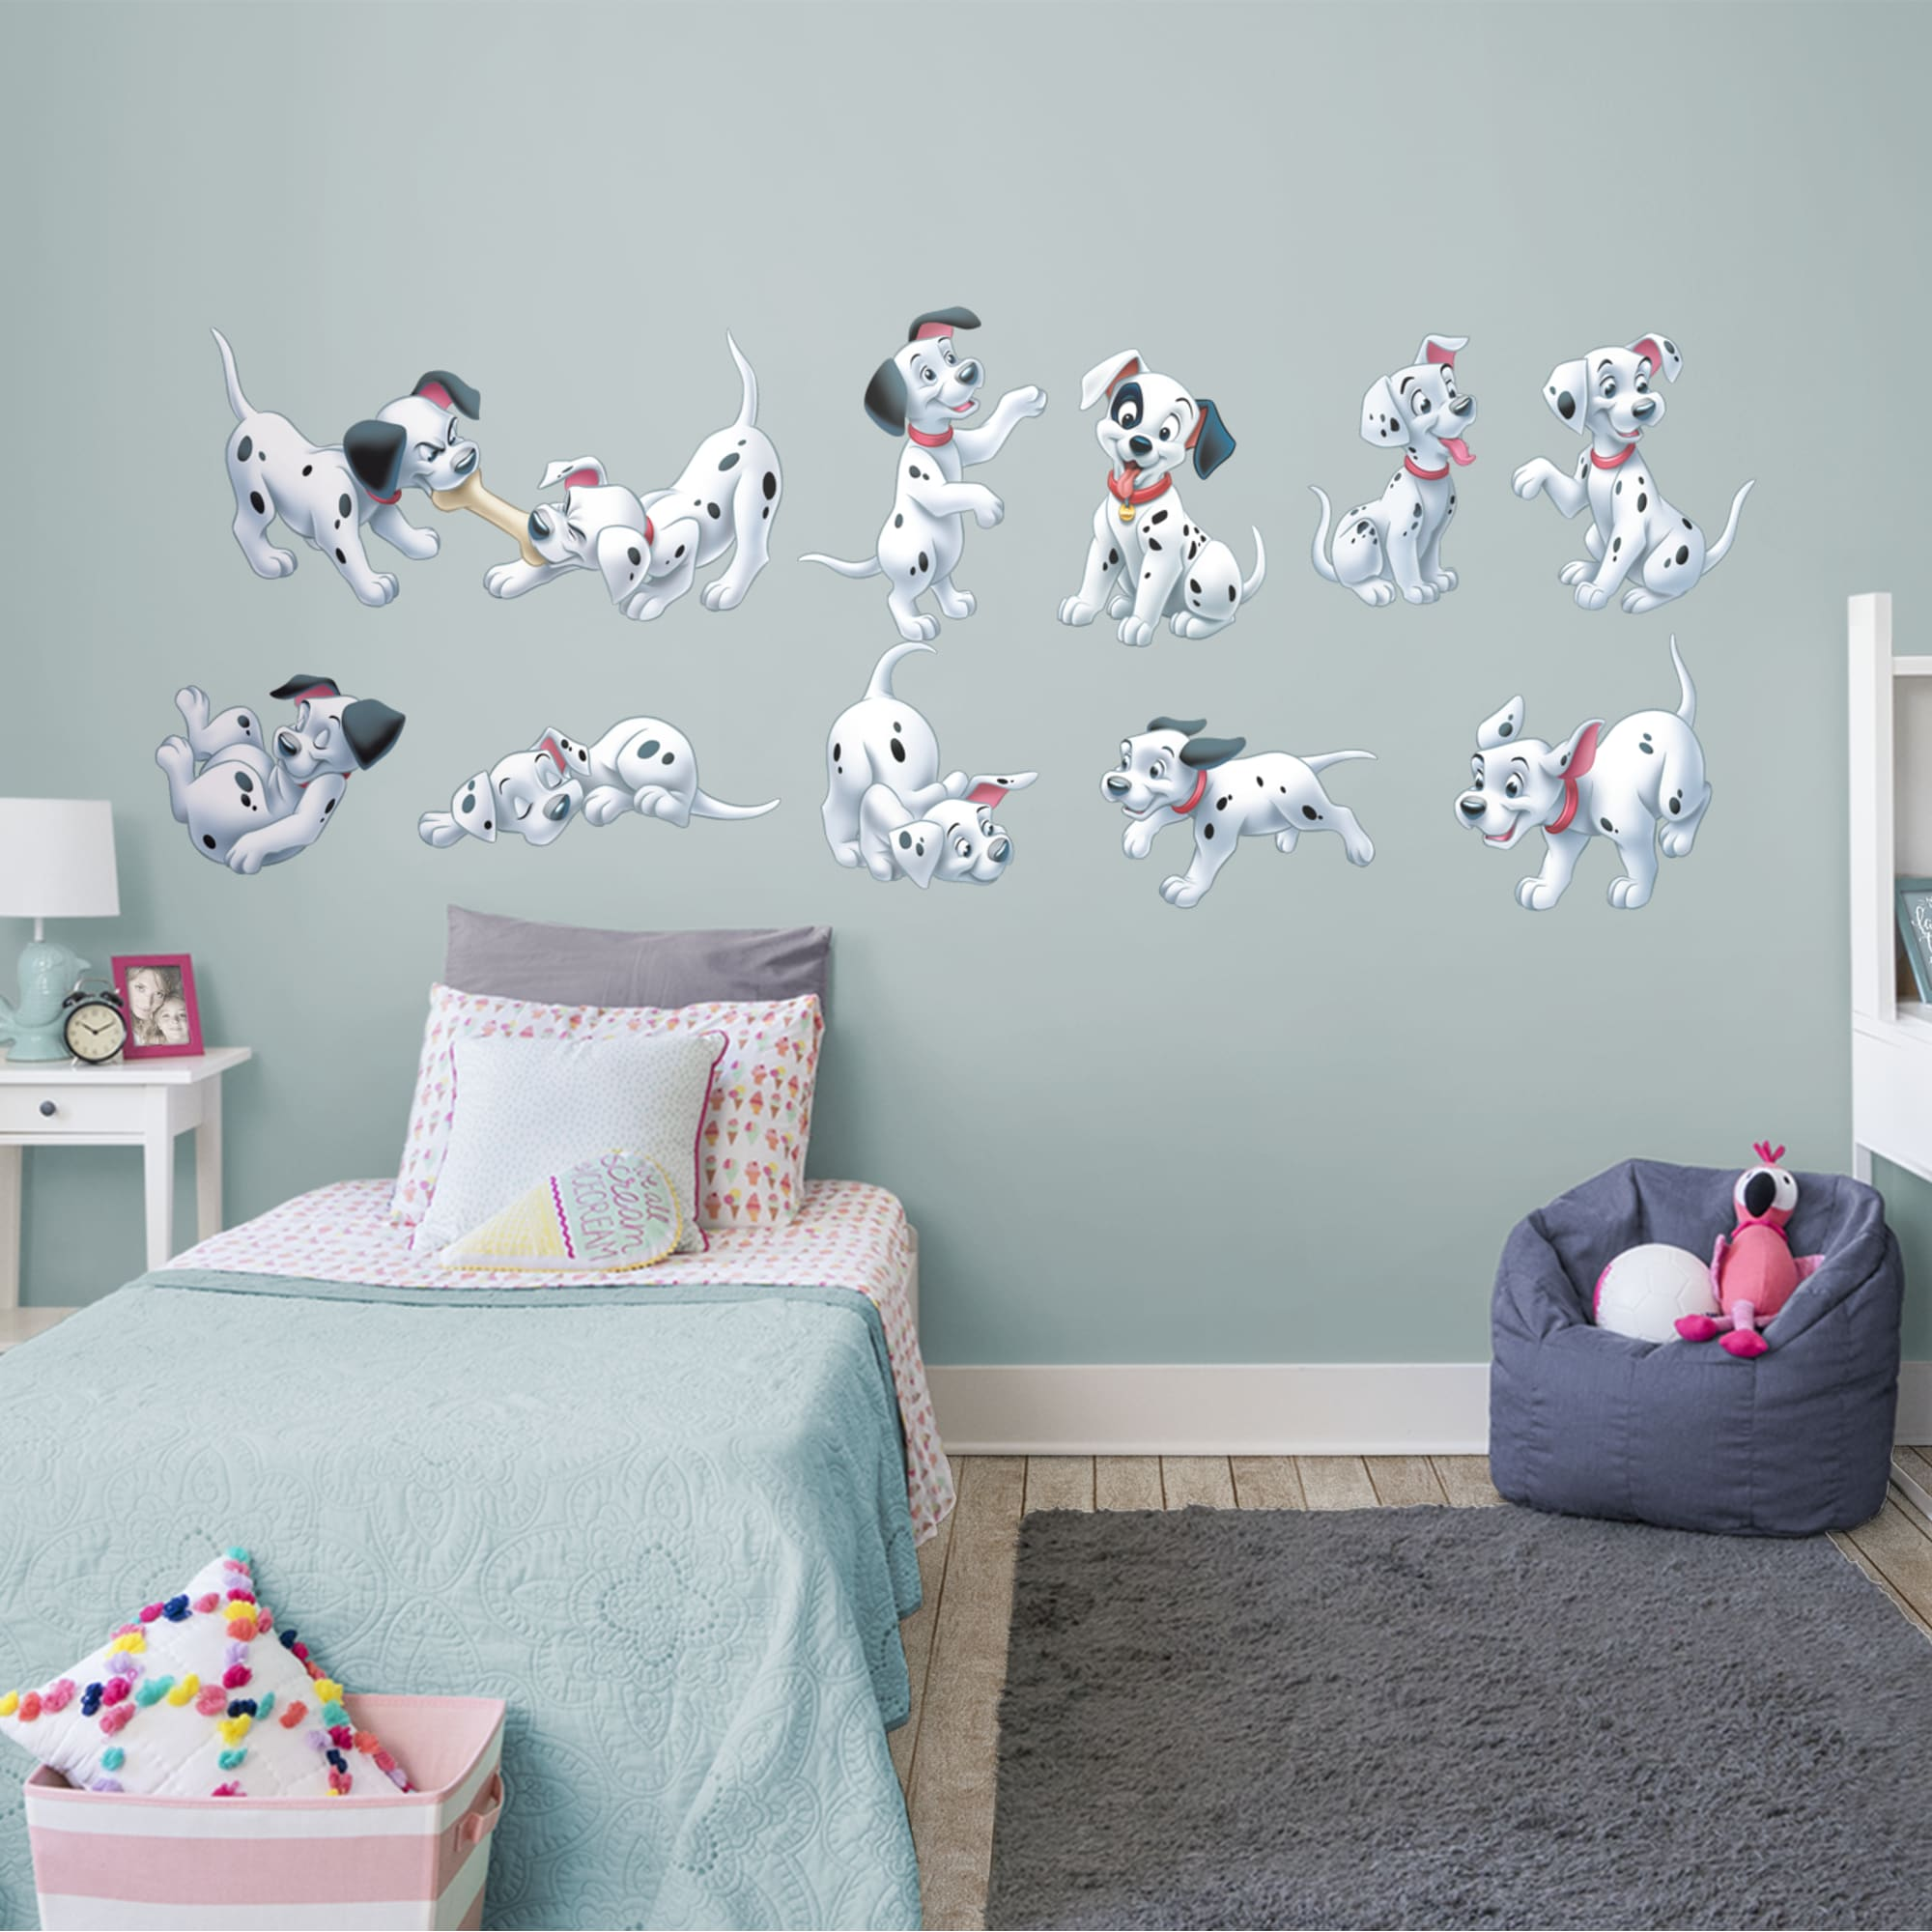 """101 Dalmatians: Puppy Collection - Officially Licensed Disney Removable Wall Decals 80.0""""W x 53.0""""H by Fathead   Vinyl"""